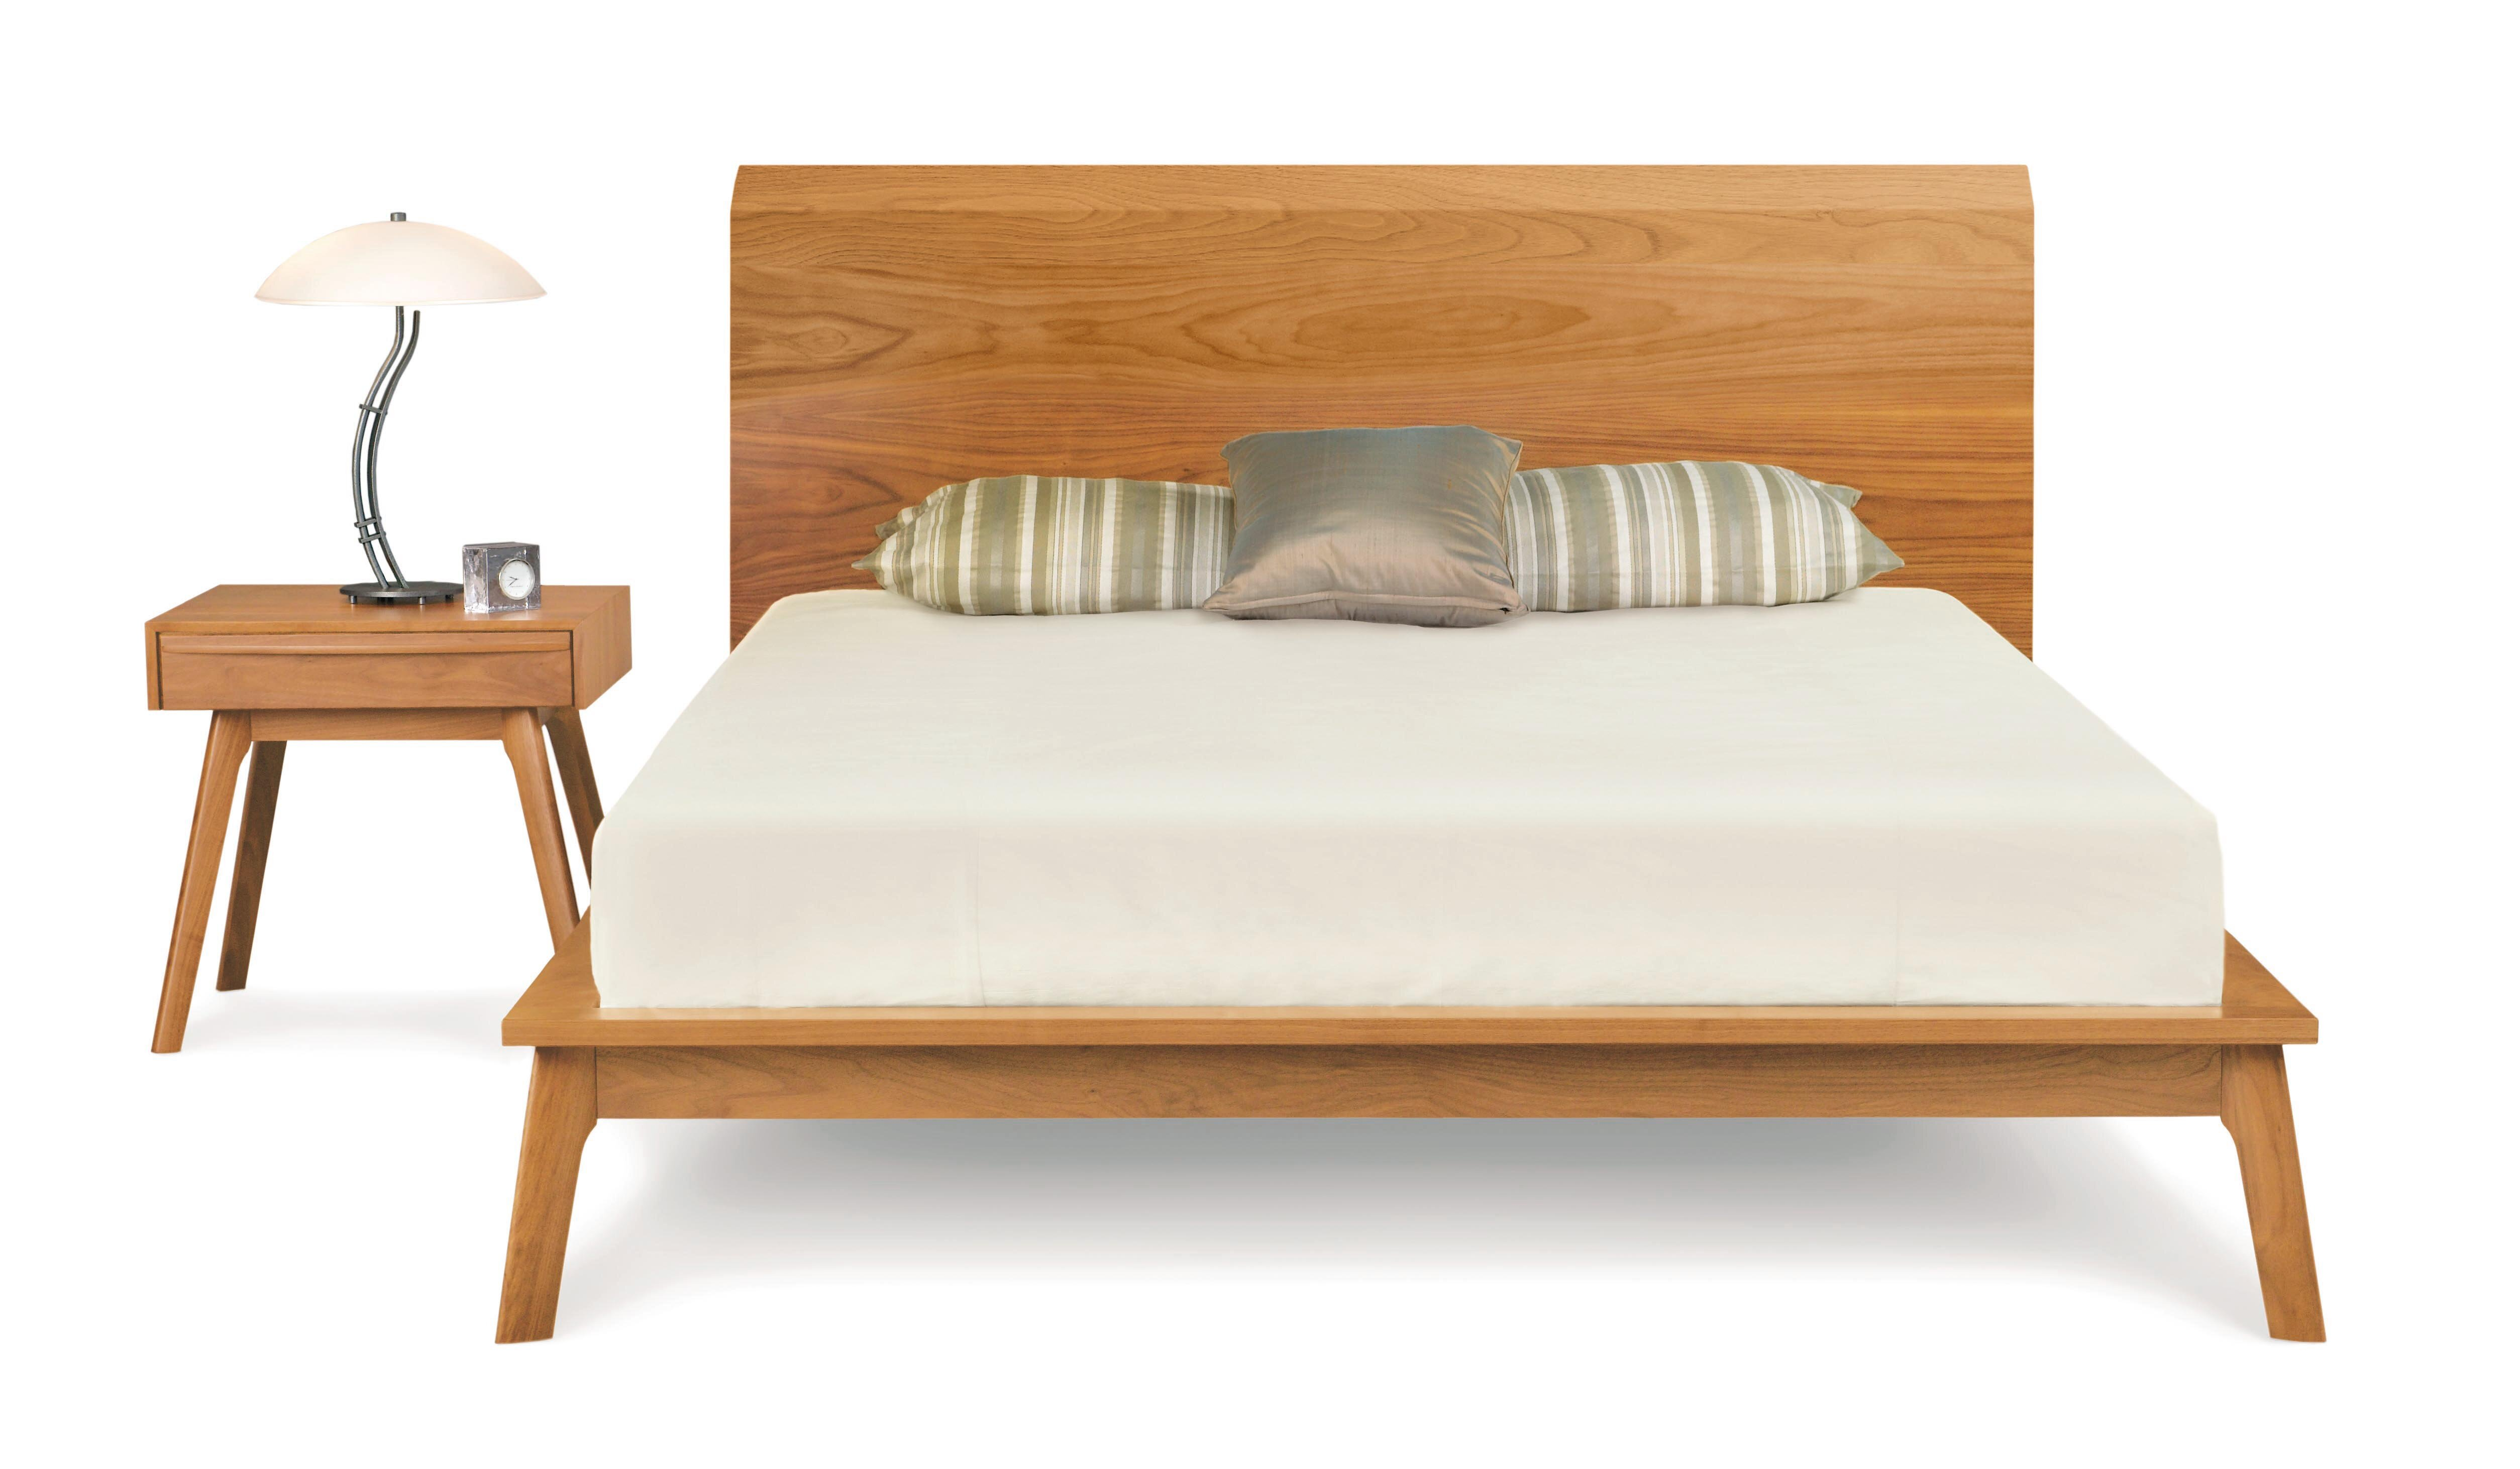 Copeland Furniture Catalina 40 King Bed With Solid Wood Headboard